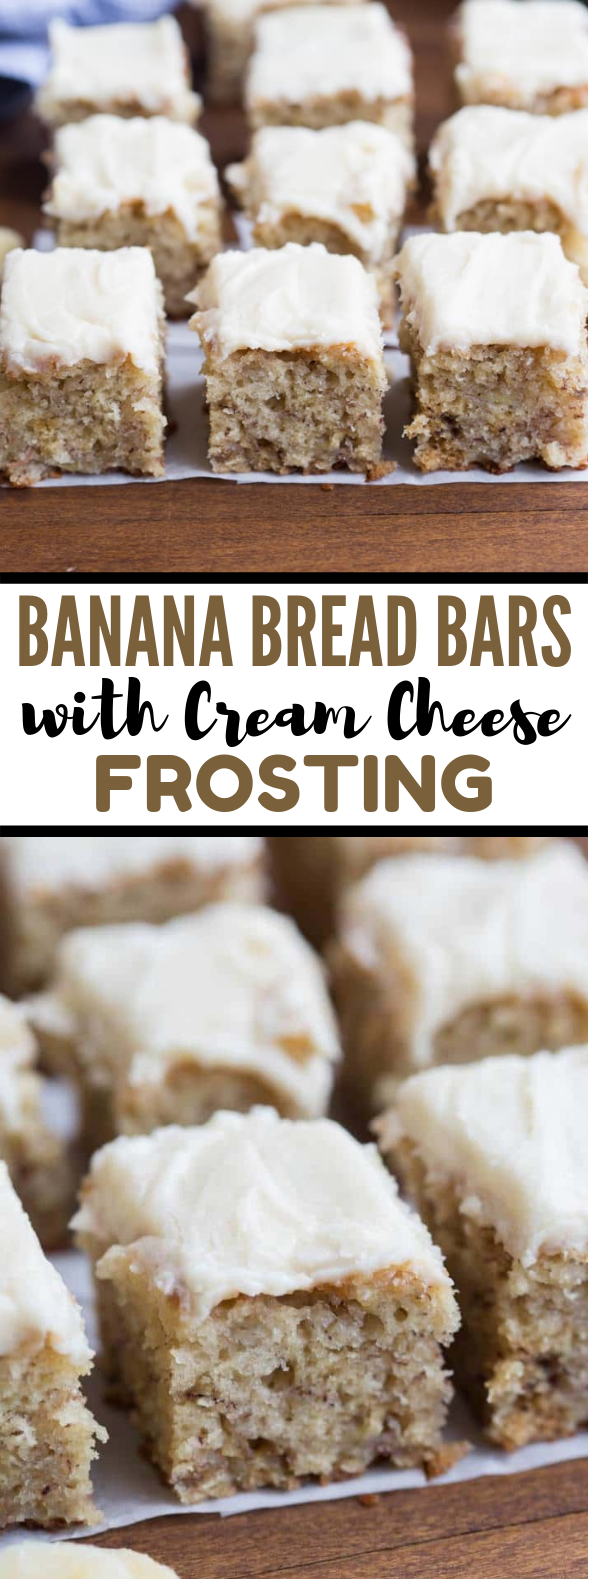 Banana Bread Bars #desserts #snack